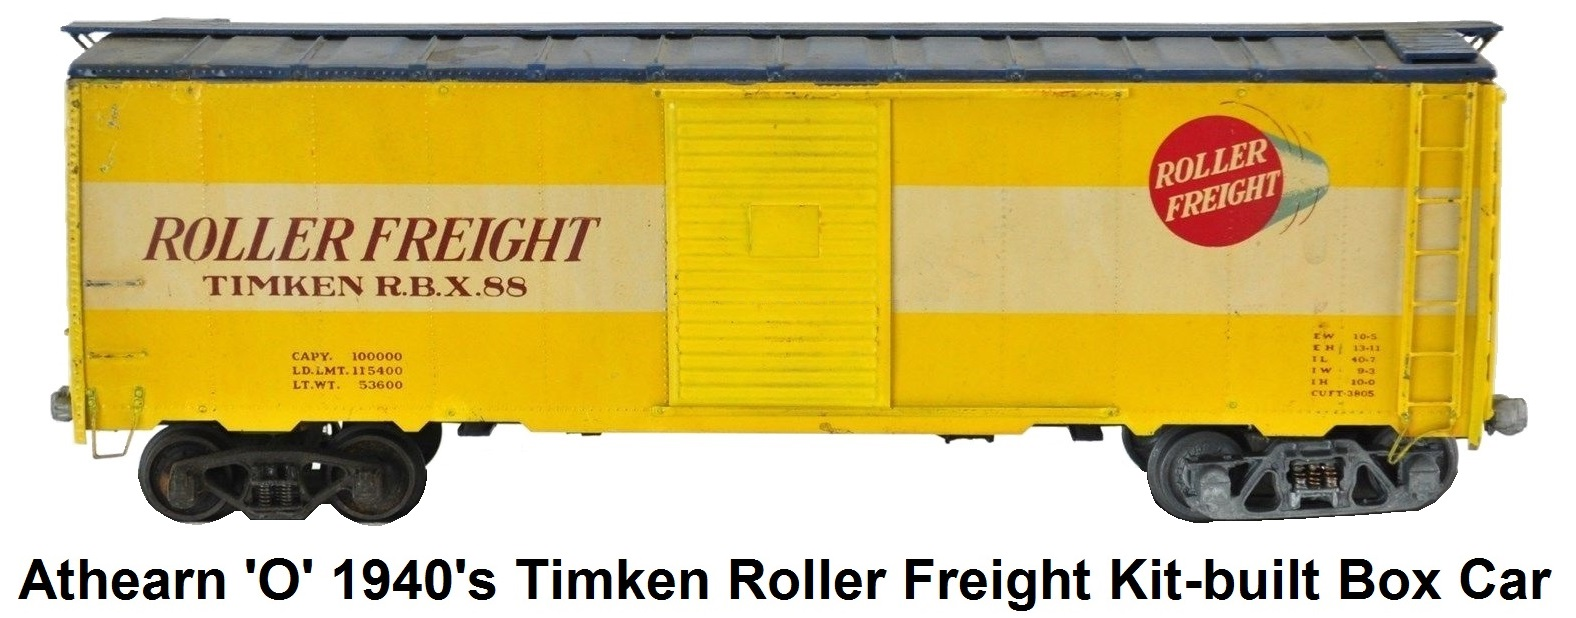 Athearn 'O' scale Timken Roller Freight 1940's Kit-built Wood With Metal Skin Box Car